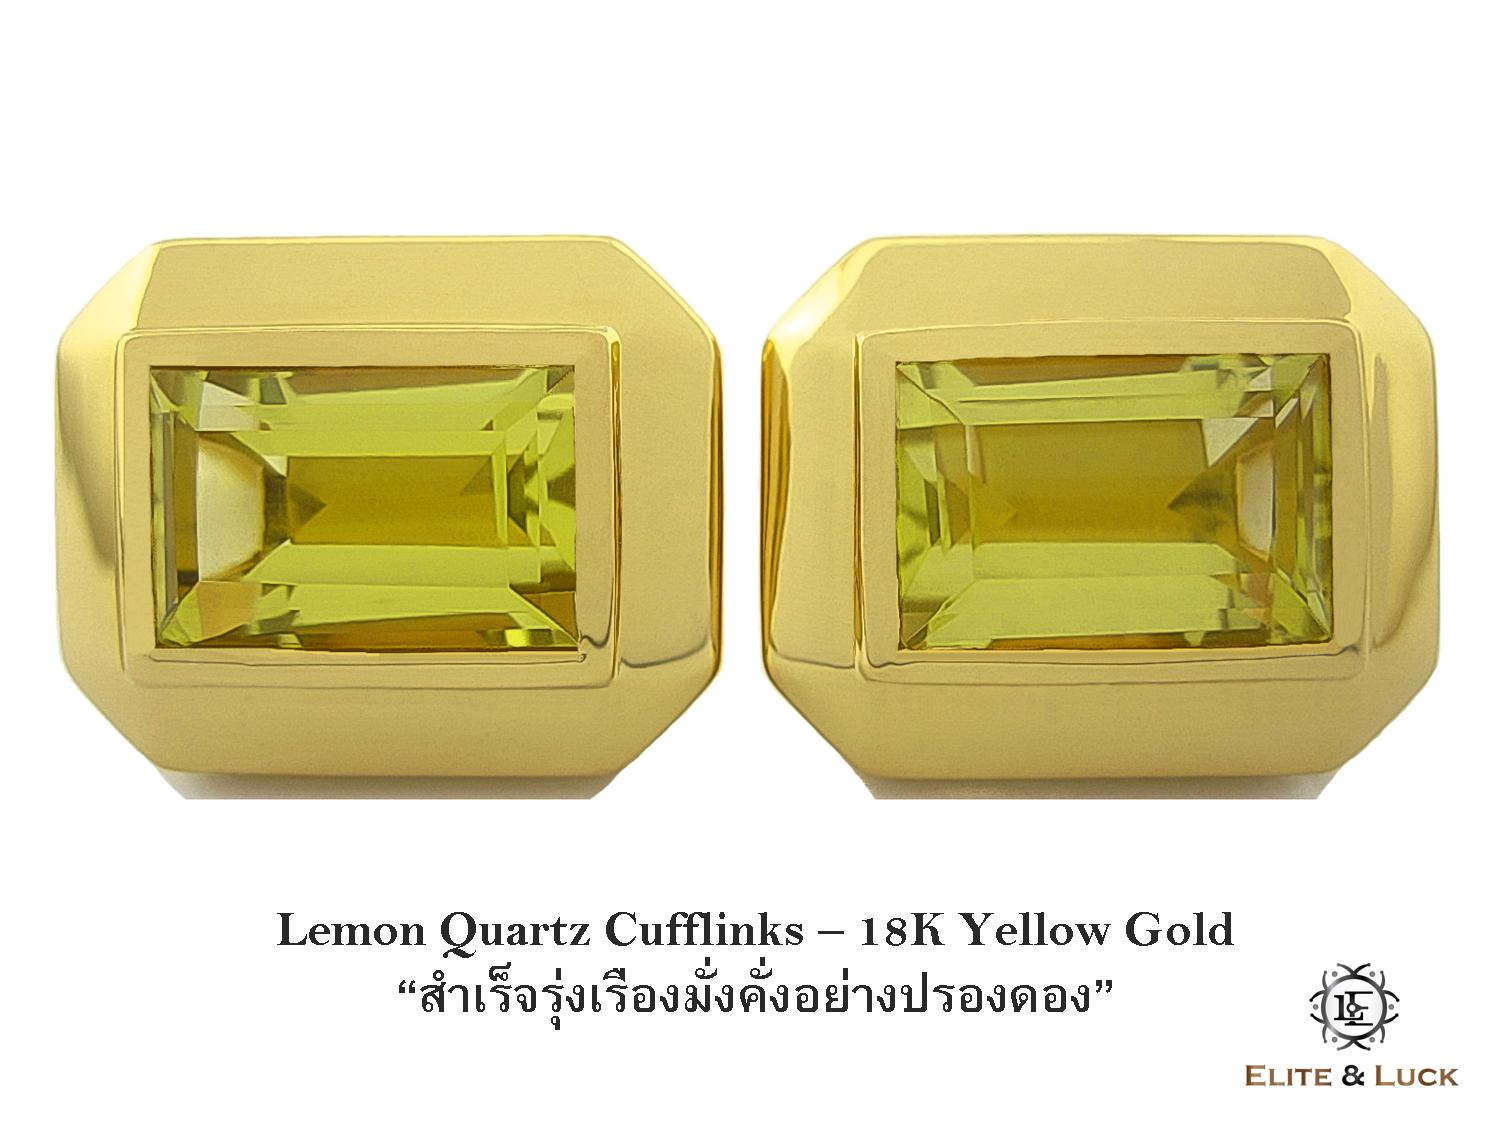 Lemon Quartz Sterling Silver Cufflinks สี 18K Yellow Gold รุ่น Elite